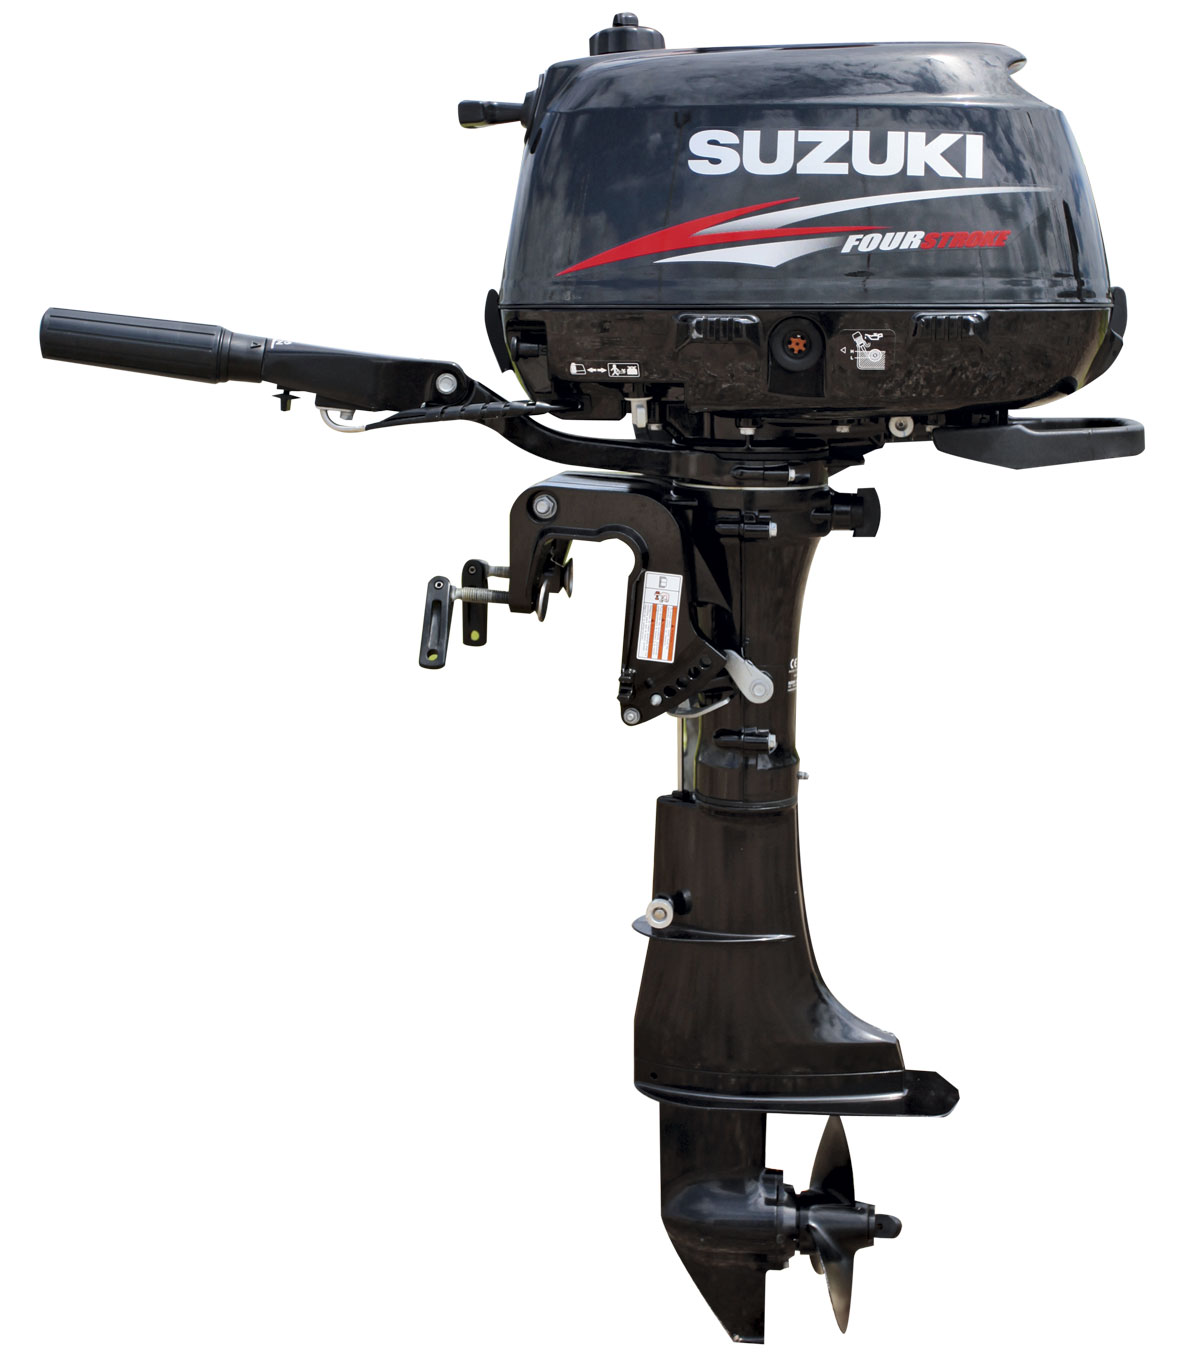 Suzuki outboard motor repair forum for Suzuki outboard motor repair